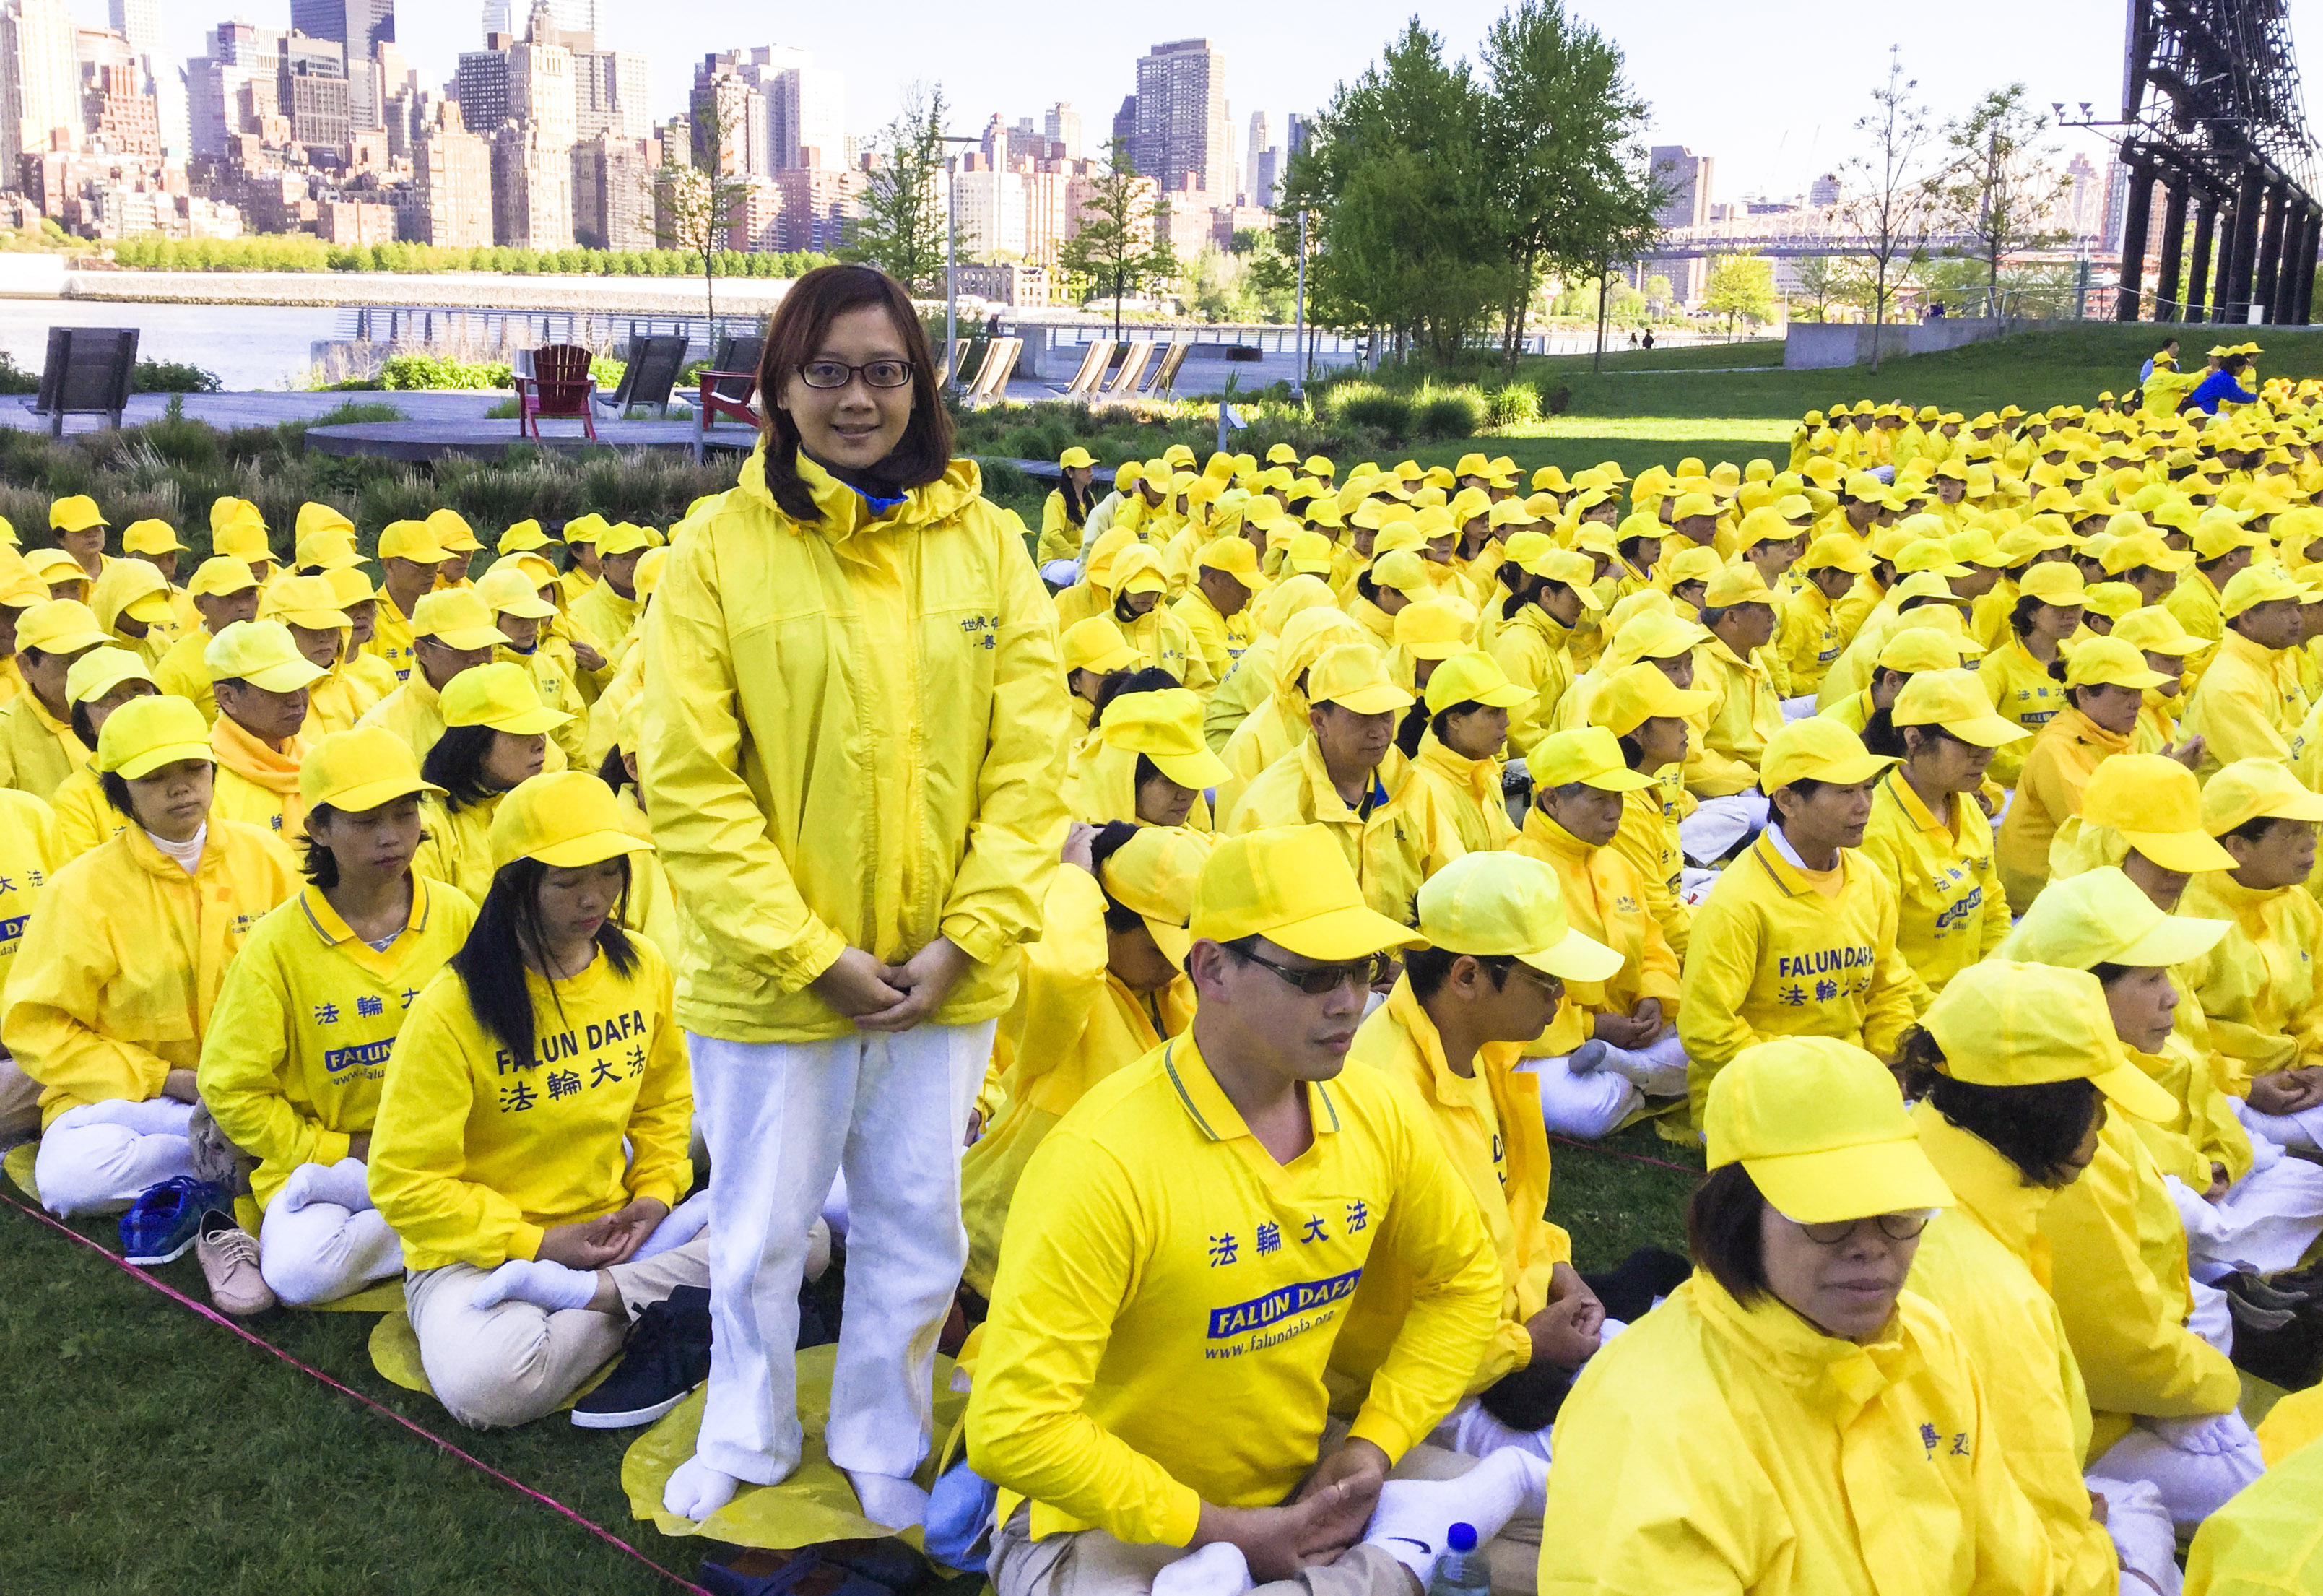 Li Yi-jing, a Falun Gong practitioner from Taiwan, participates in a character formation event at Gantry Plaza State Park on May 12, 2016. (Frank Fang/Epoch Times)